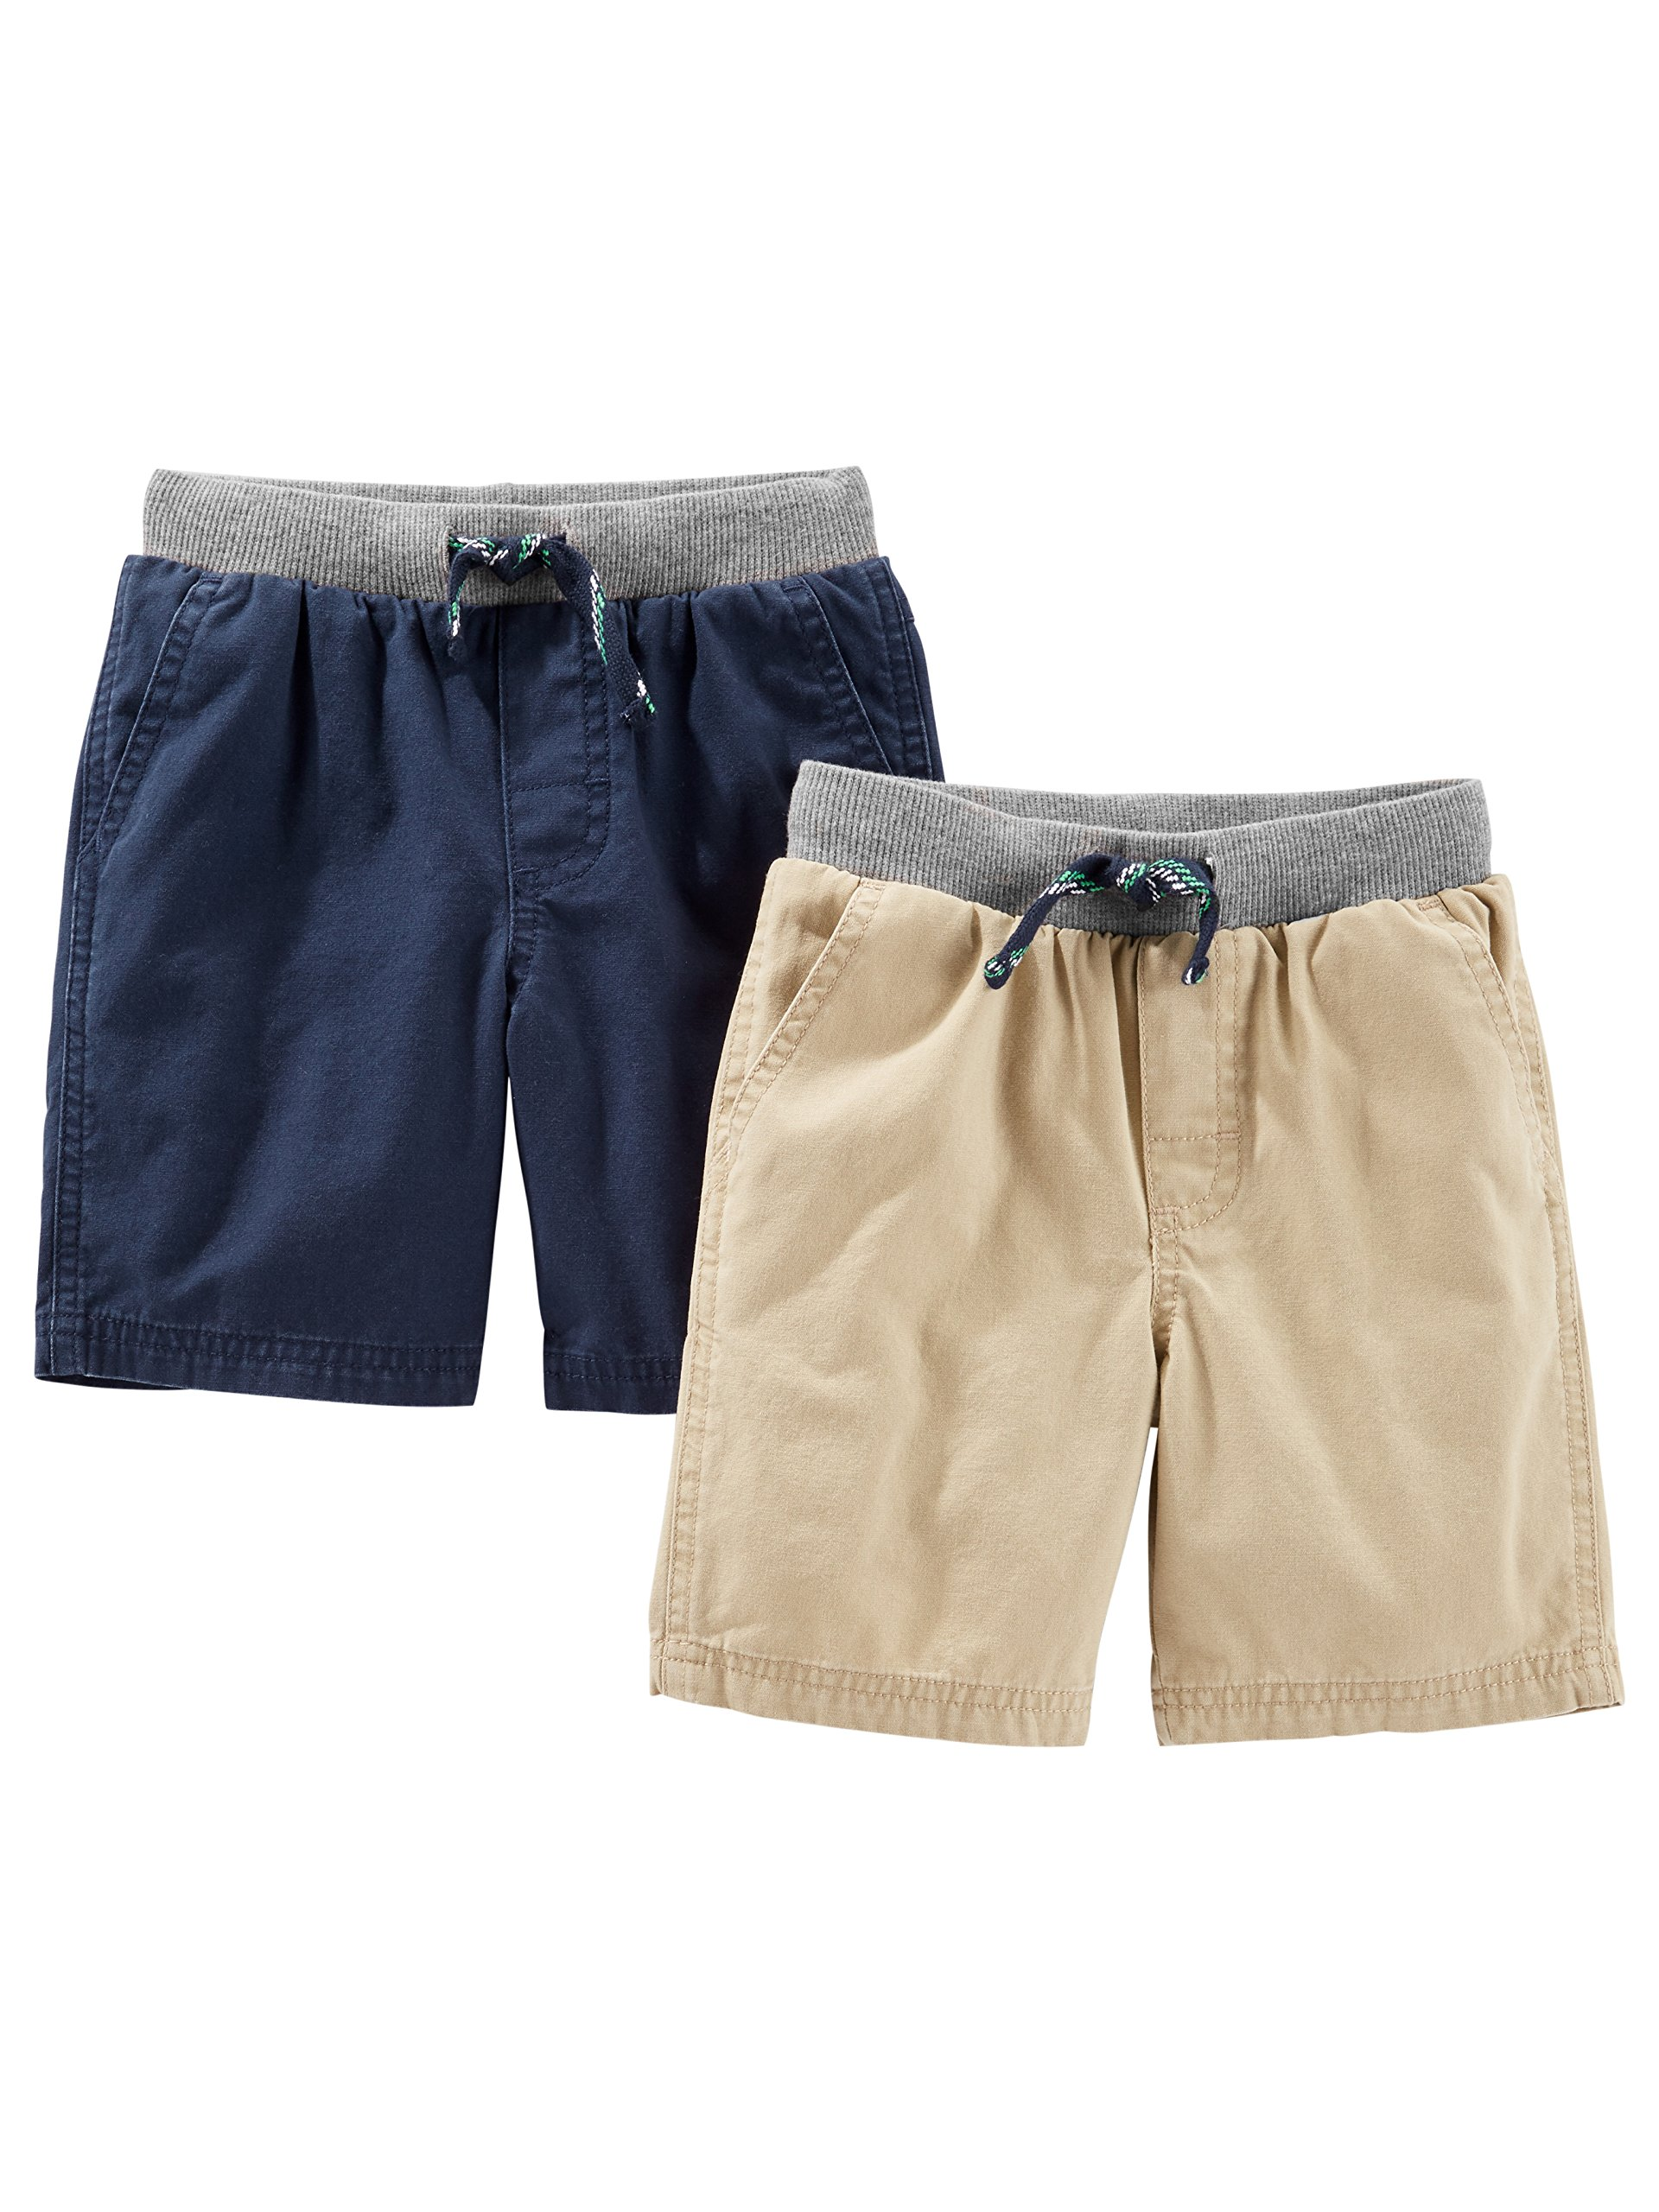 Simple Joys by Carters Toddler Boys 3-Pack Mesh Shorts